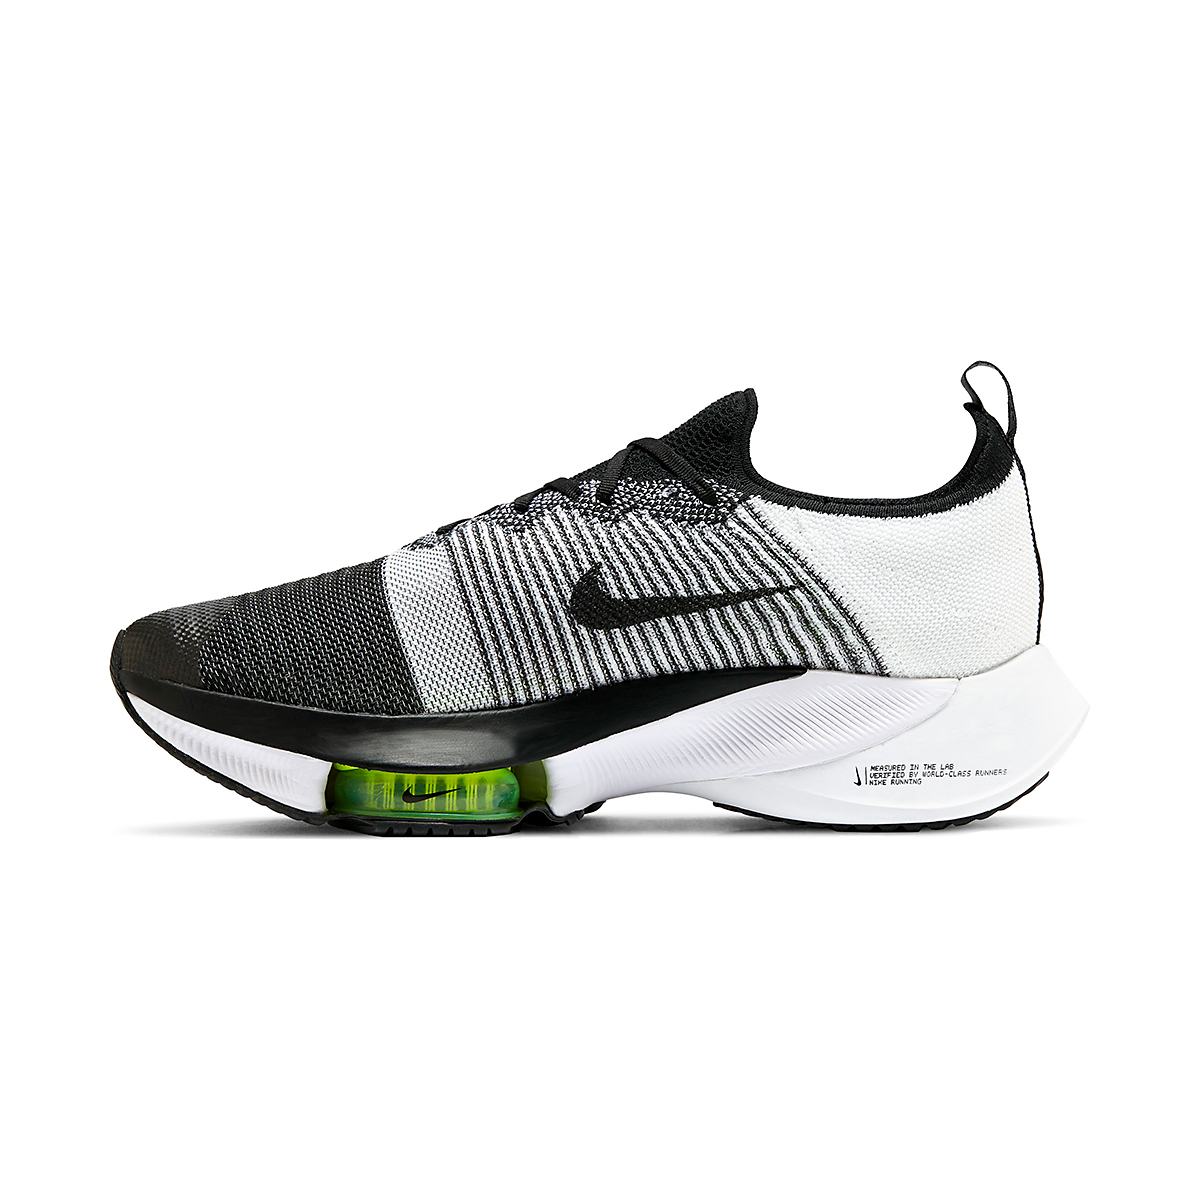 Men's Nike Air Zoom Tempo NEXT% Running Shoe - Color: Black/White-Volt - Size: 6 - Width: Regular, Black/White-Volt, large, image 2